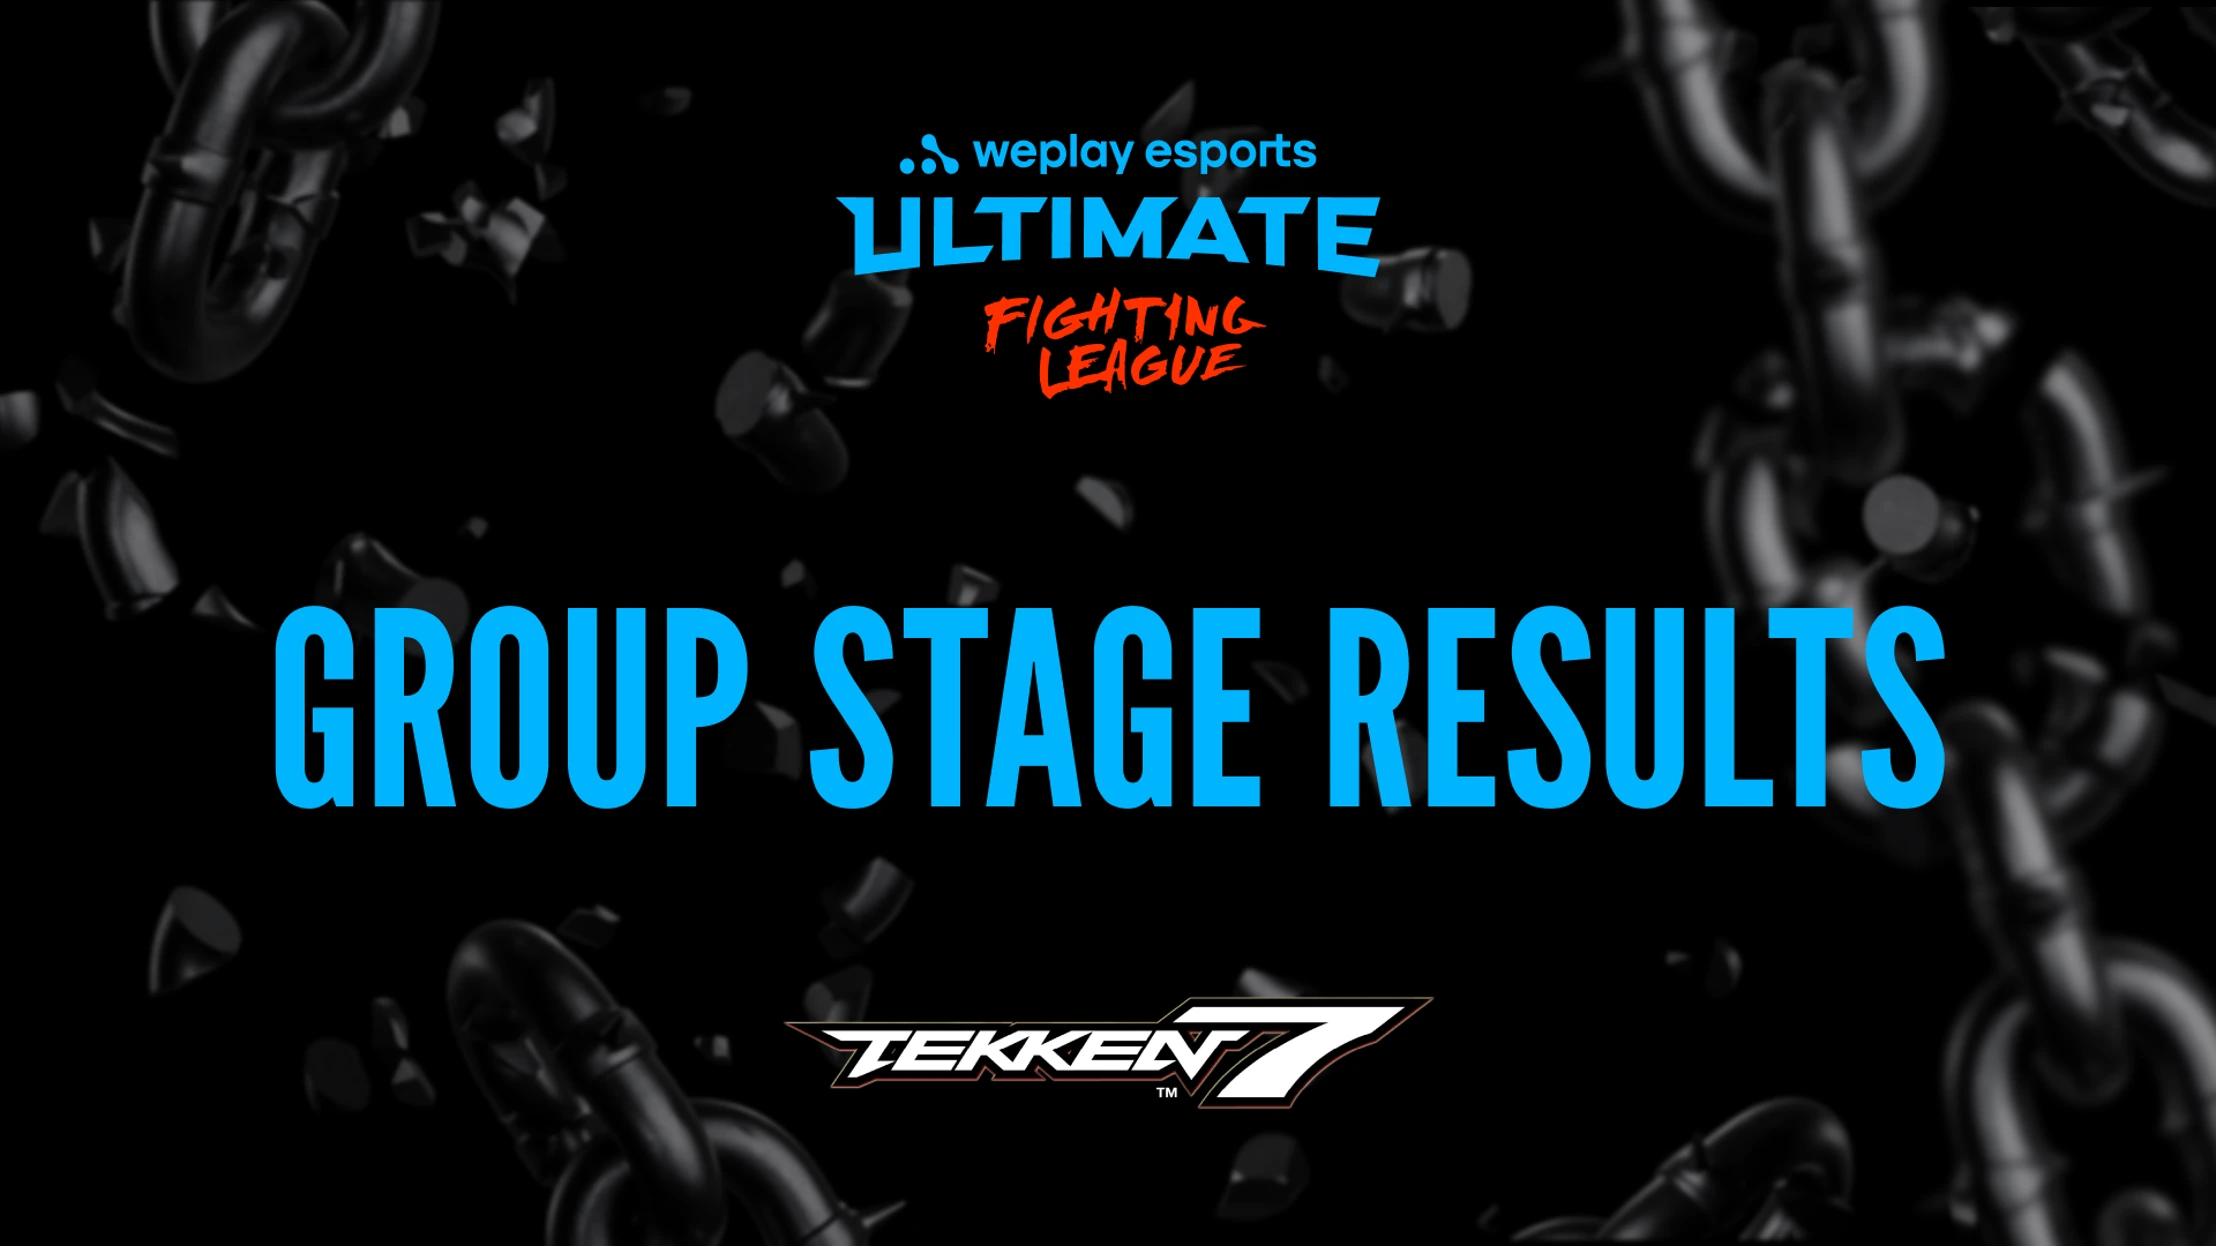 WePlay Ultimate Fighting League Tekken 7 Group Stage Results